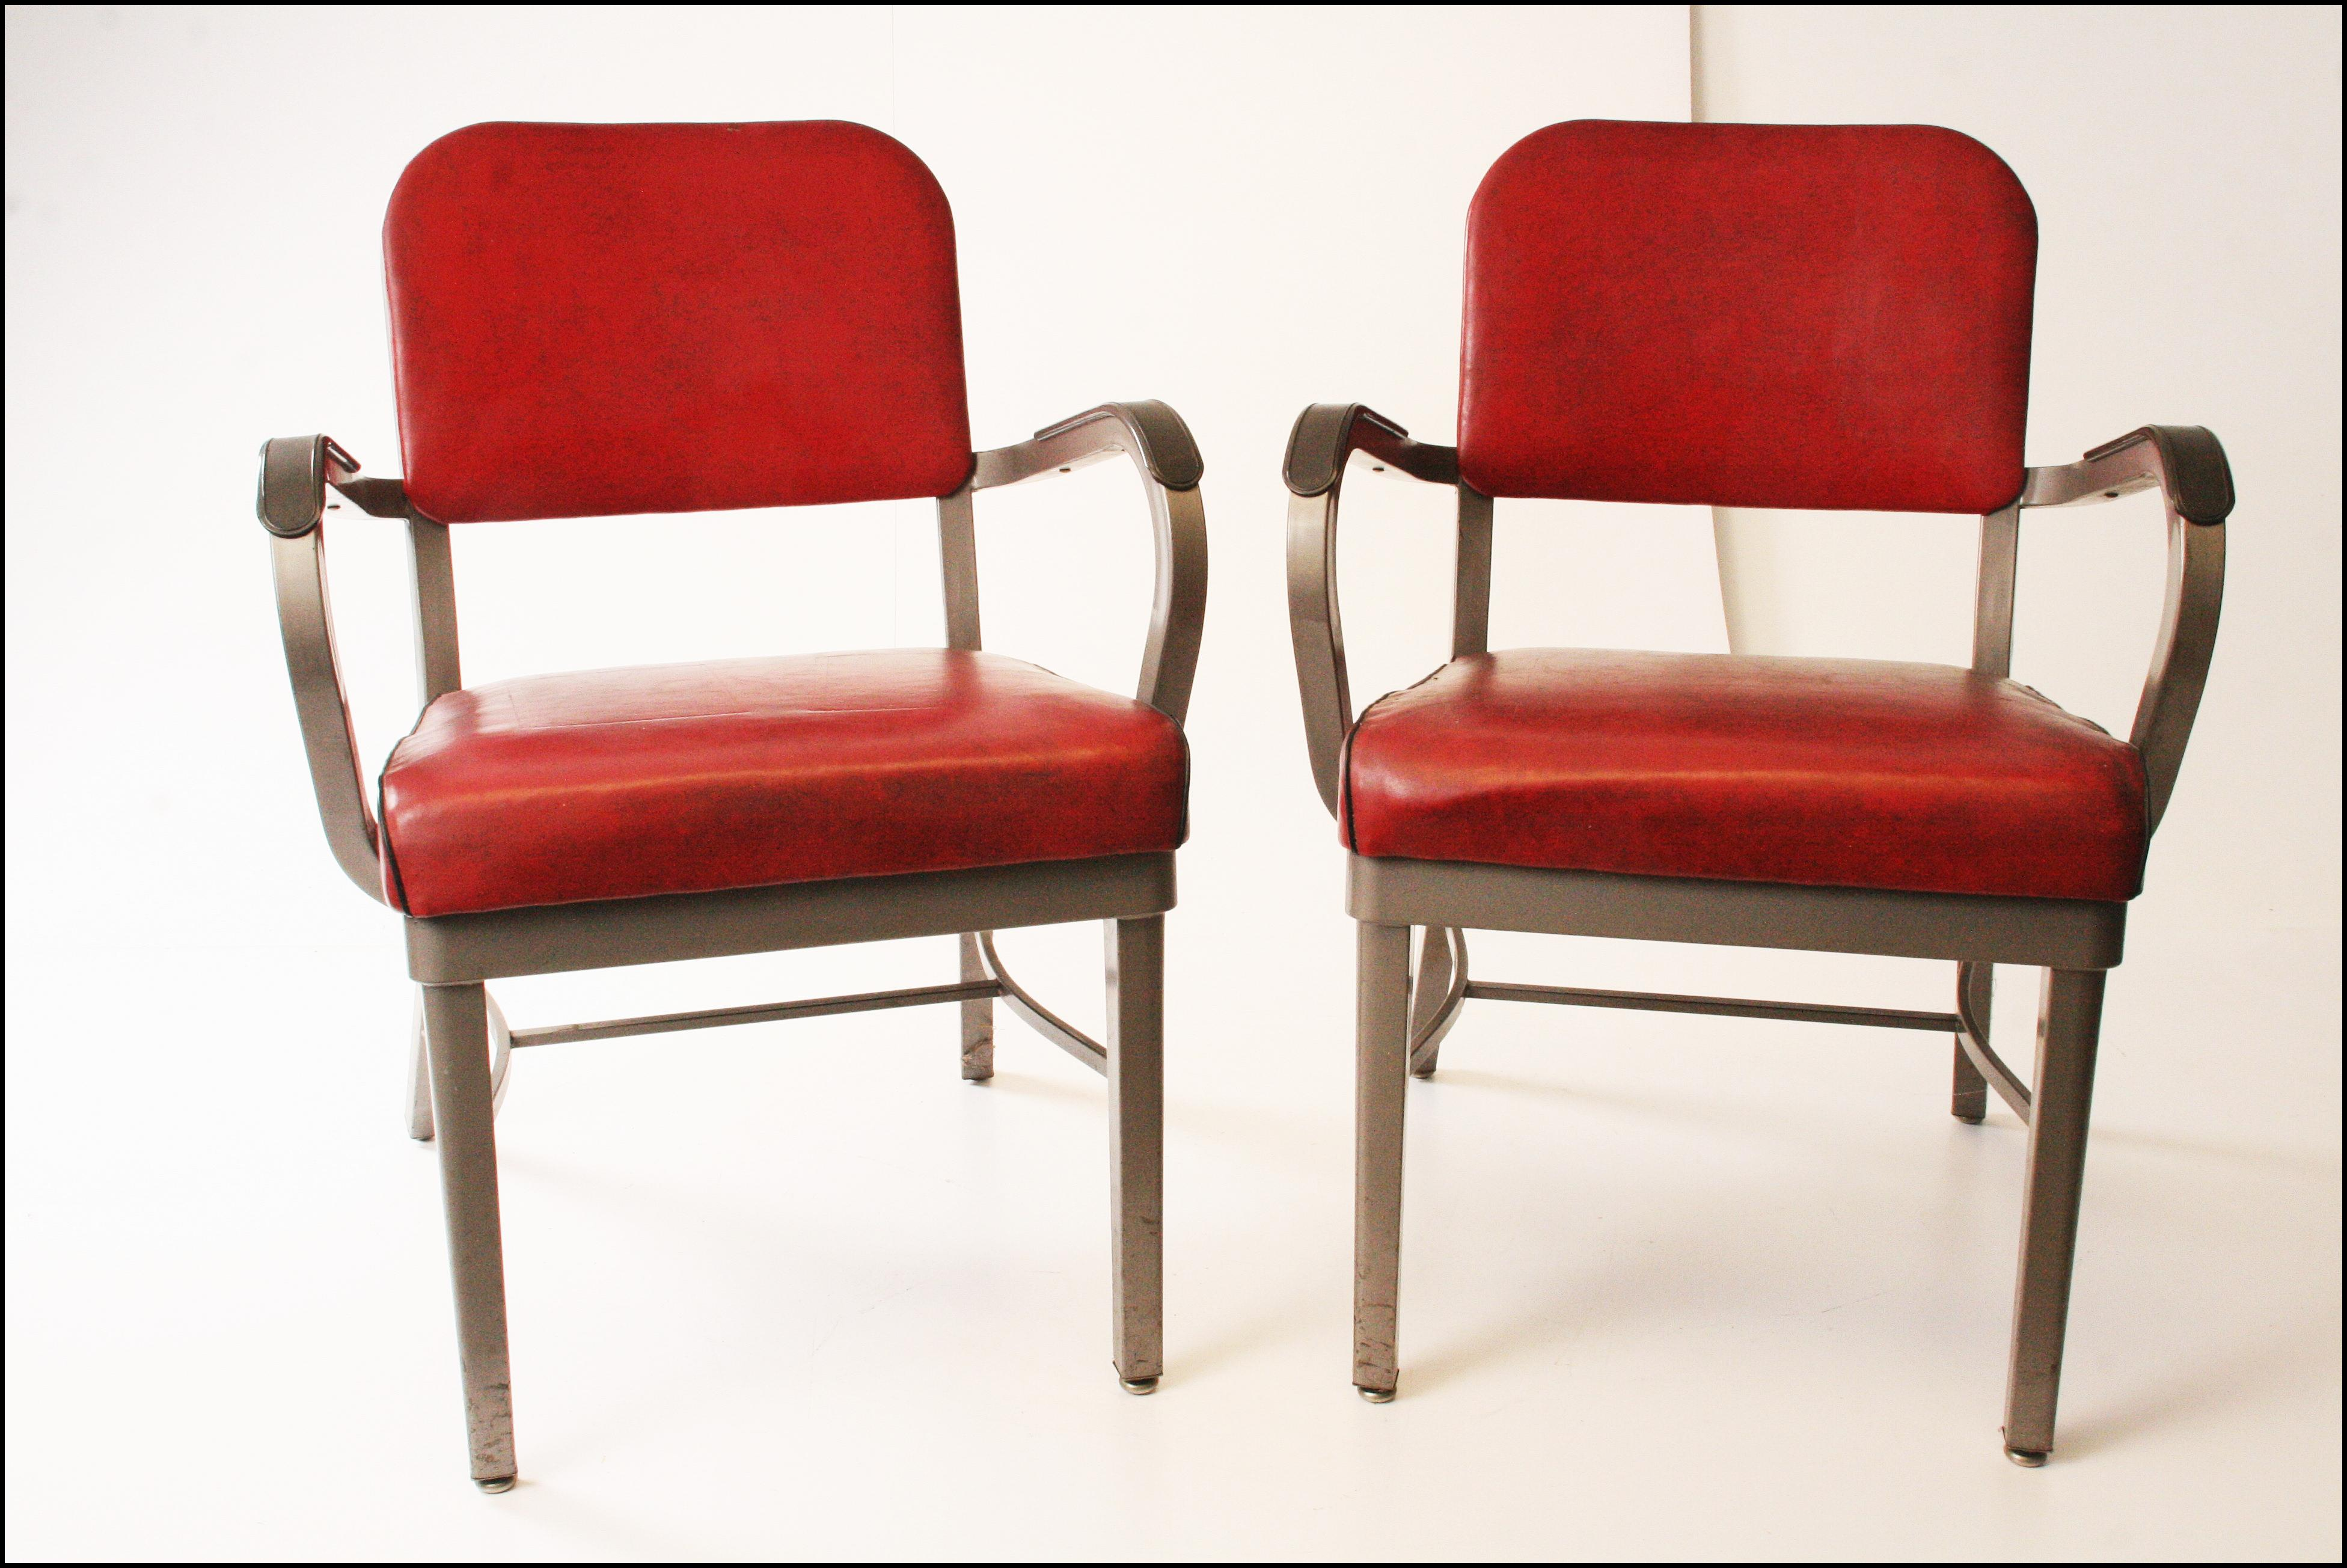 Industrial Vintage Industrial Stylex Office Red Armchairs   A Pair For Sale    Image 3 Of